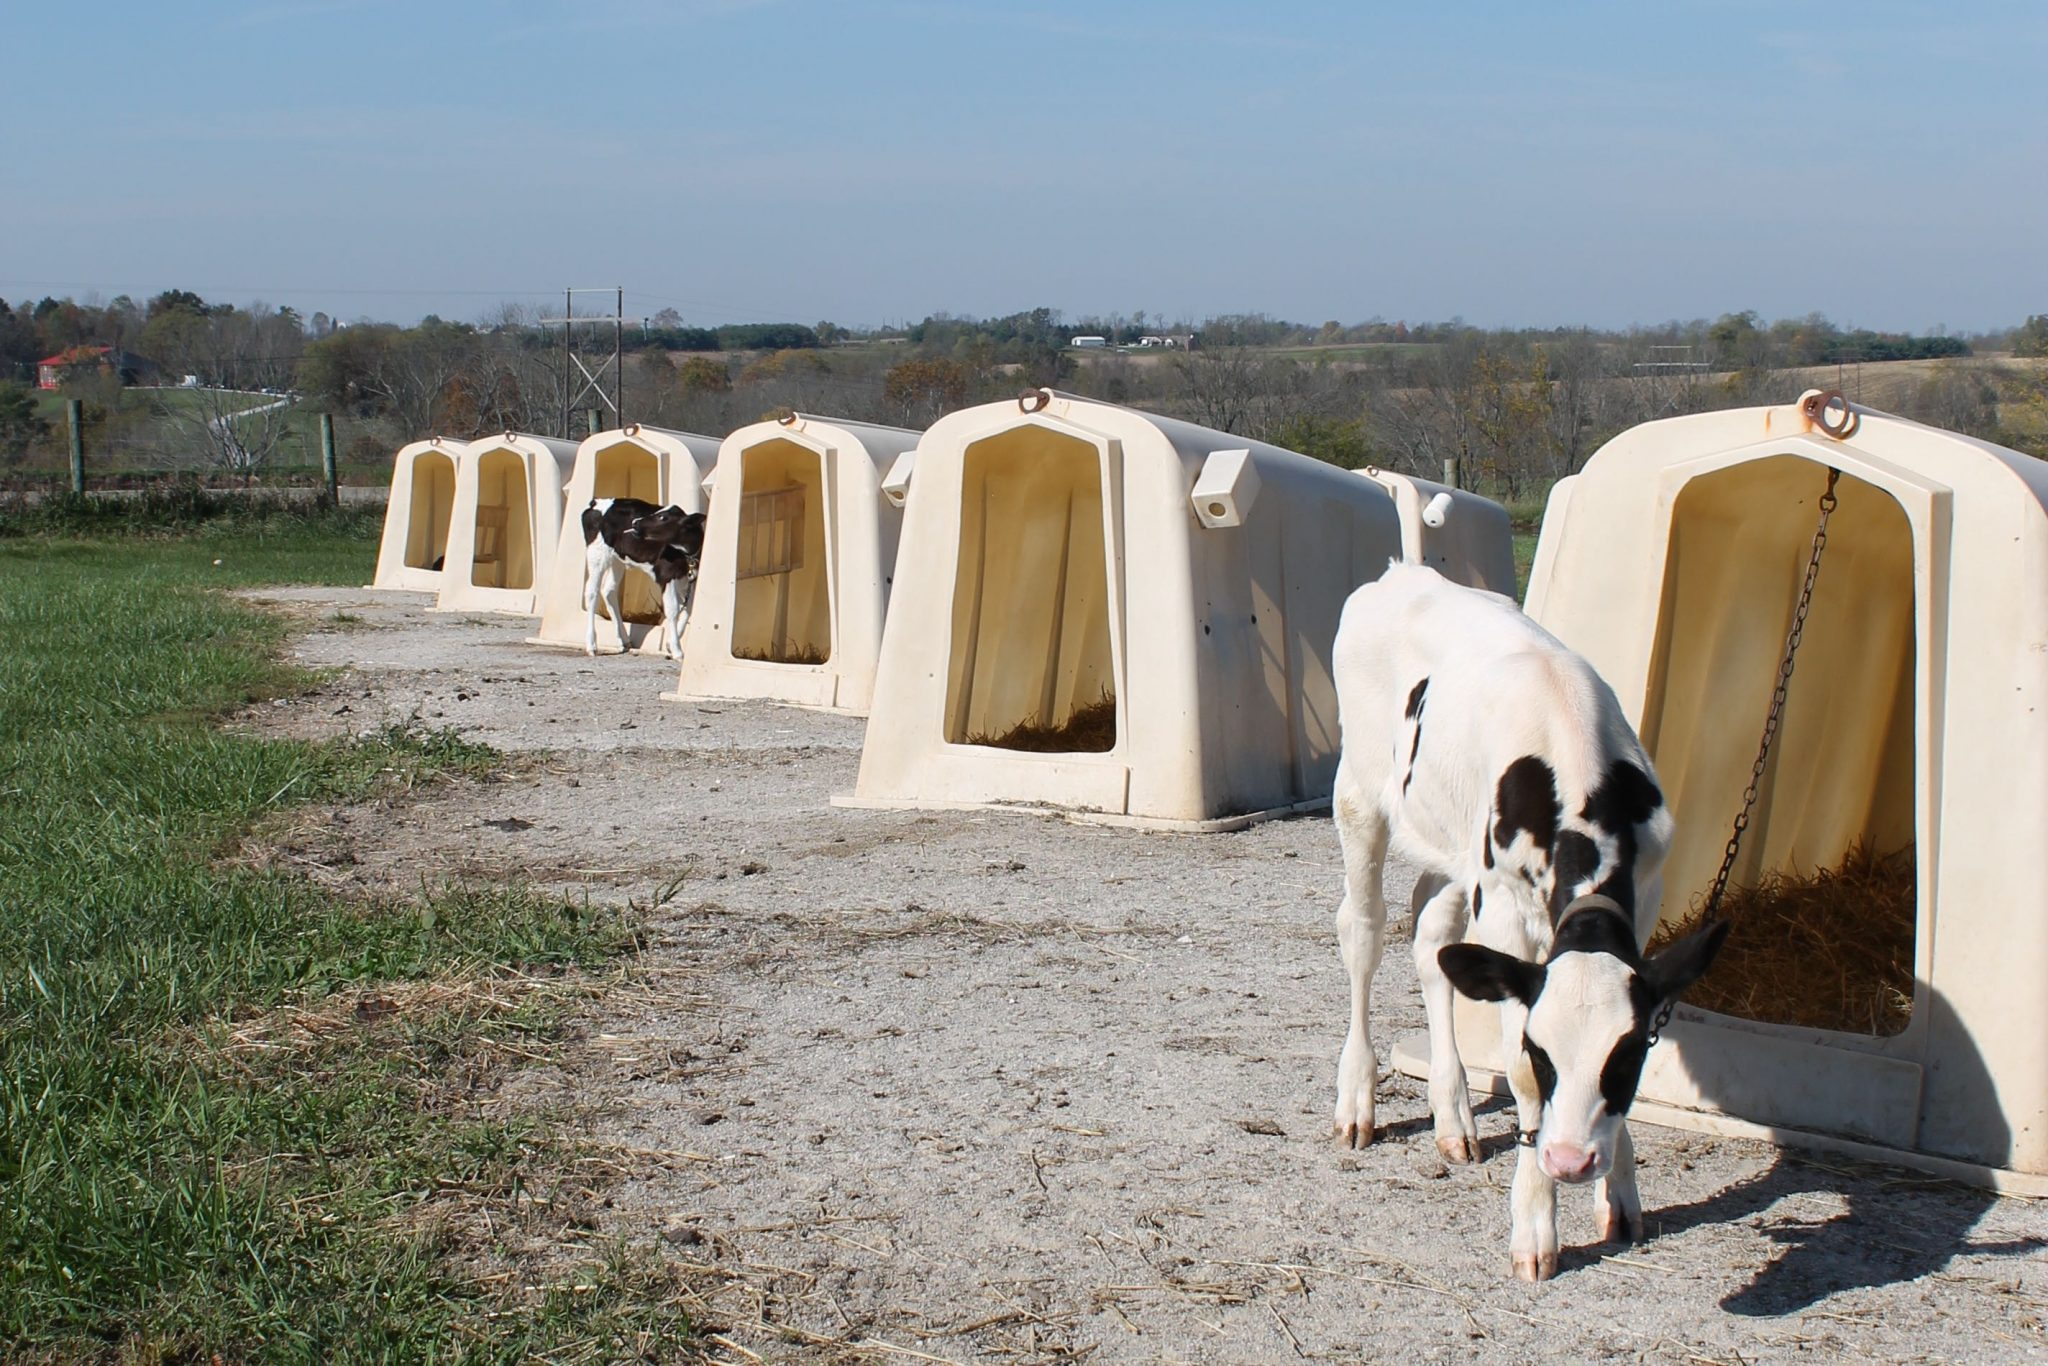 Visit to Ed-Mar Dairy, a local dairy farm in Northern Kentucky is a tour you're gonna want to see. These Holsteins make the best cheese around!